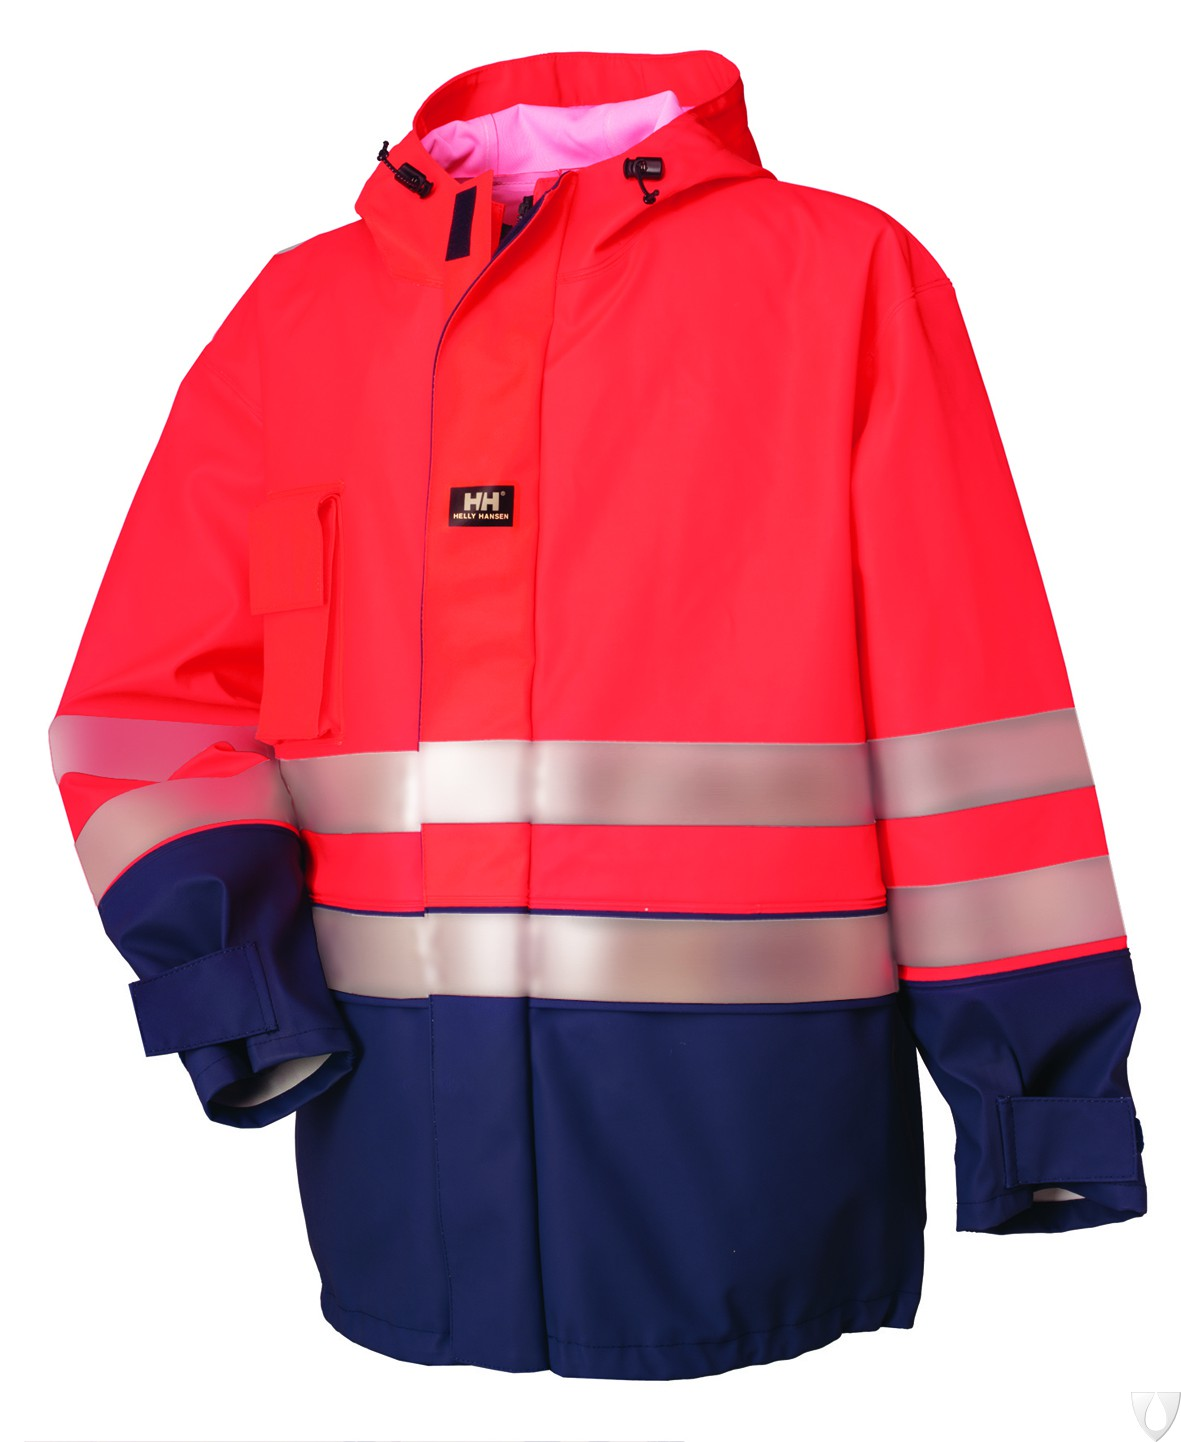 Helly Hansen Lillehammer Jacket VLAMVERTRAGEND 70172